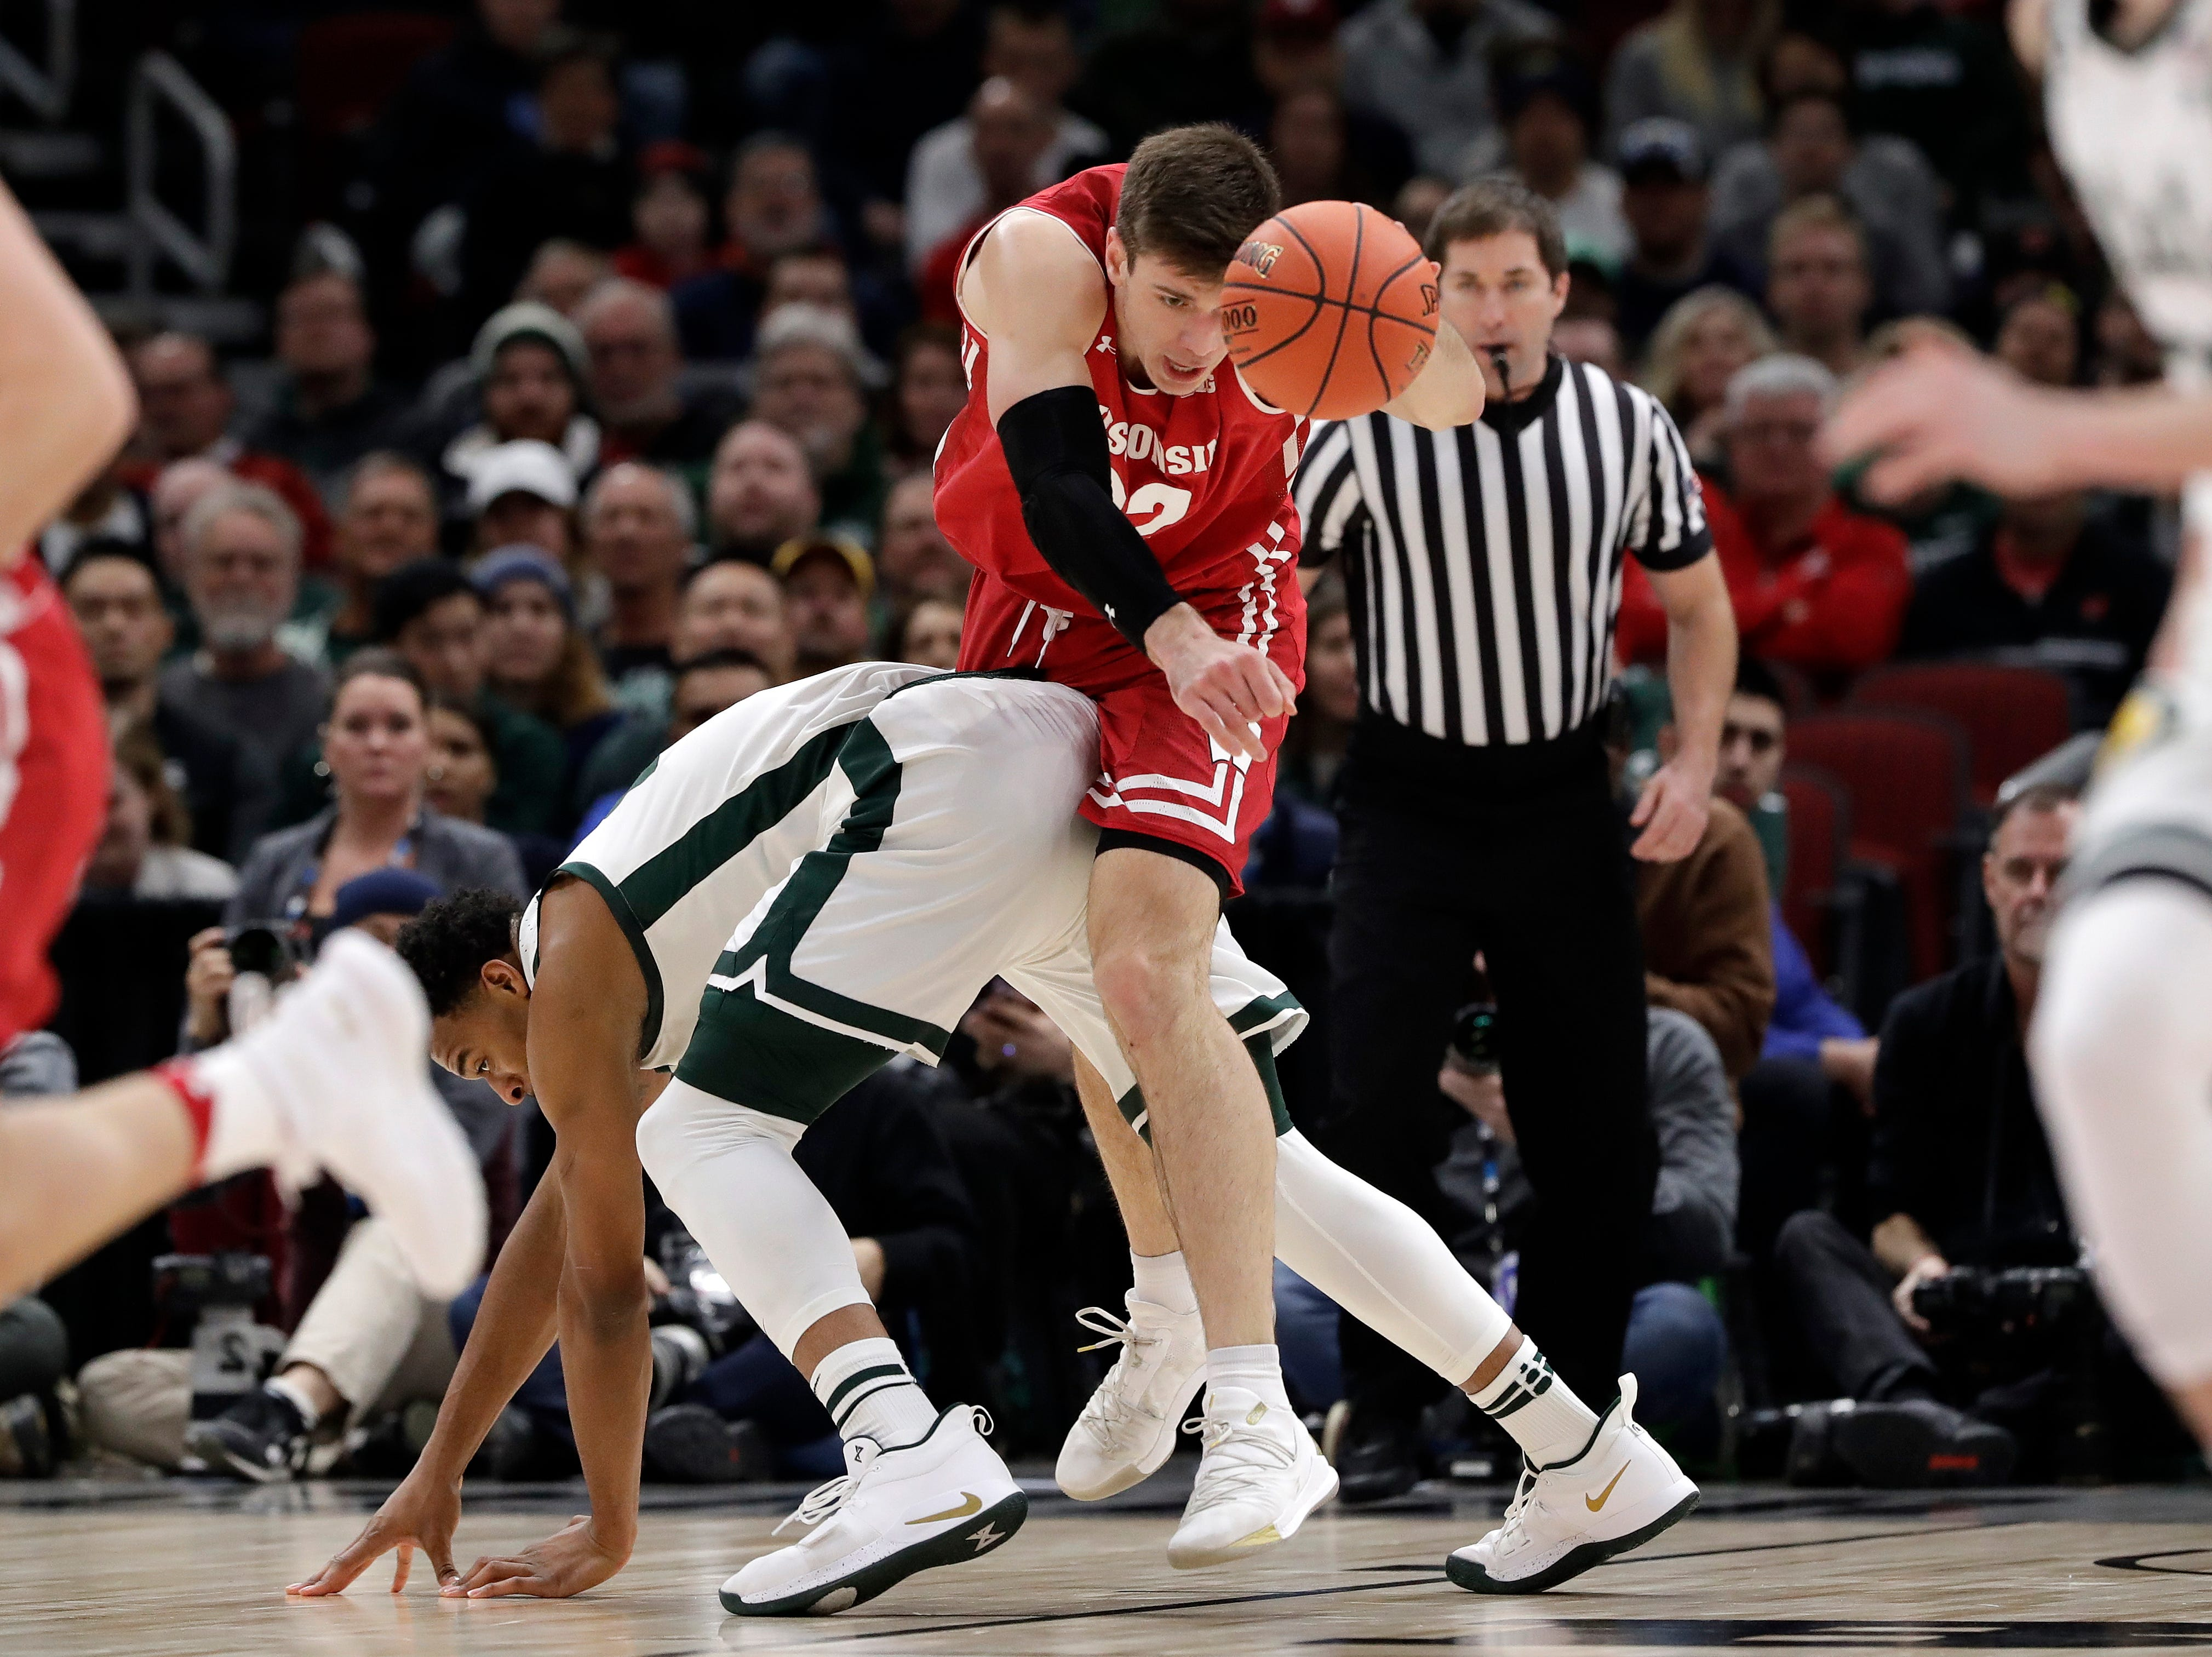 Wisconsin's Ethan Happ (22) chases the ball over Michigan's Xavier Tillman during the first half of an NCAA college basketball game in the semifinals of the Big Ten Conference tournament, Saturday, March 16, 2019, in Chicago.